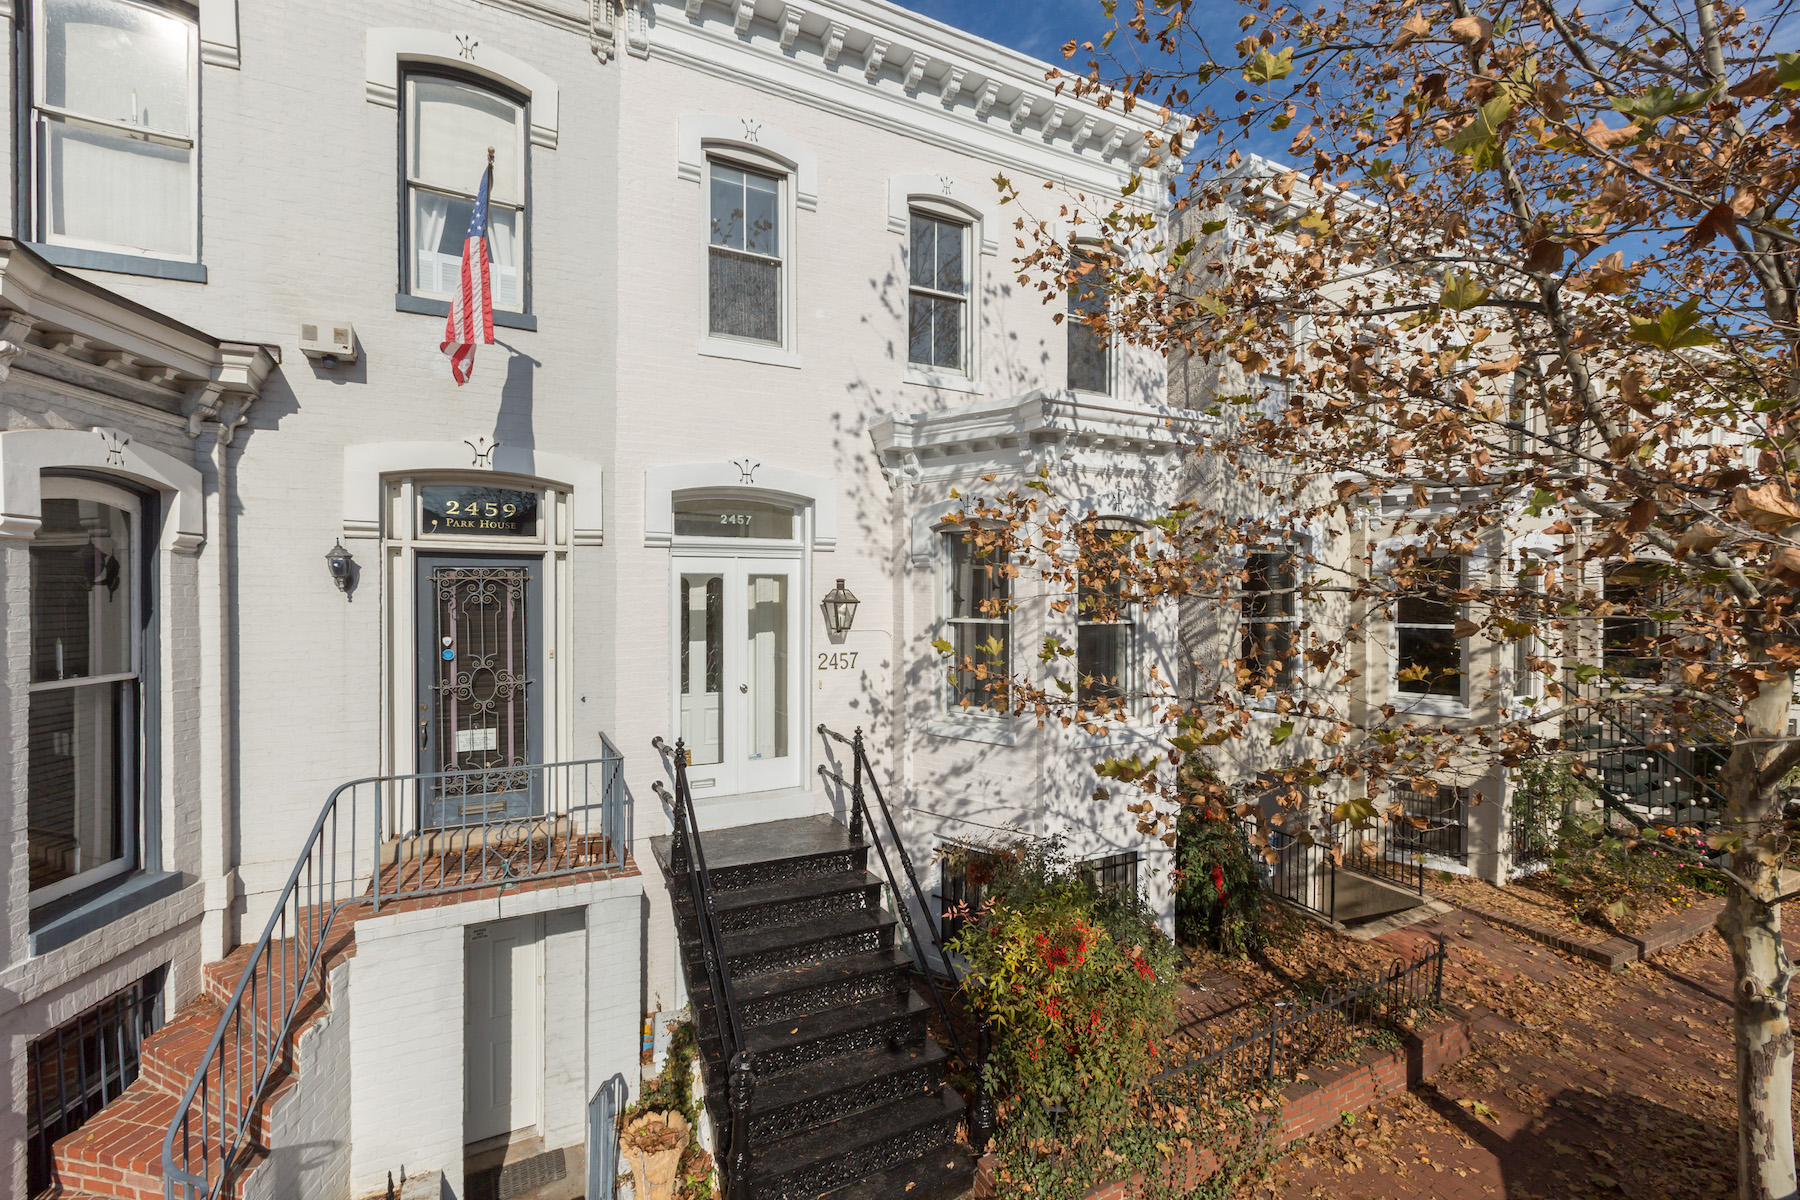 Single Family Home for Sale at Georgetown 2457 P St Georgetown, Washington, District Of Columbia, 20007 United States